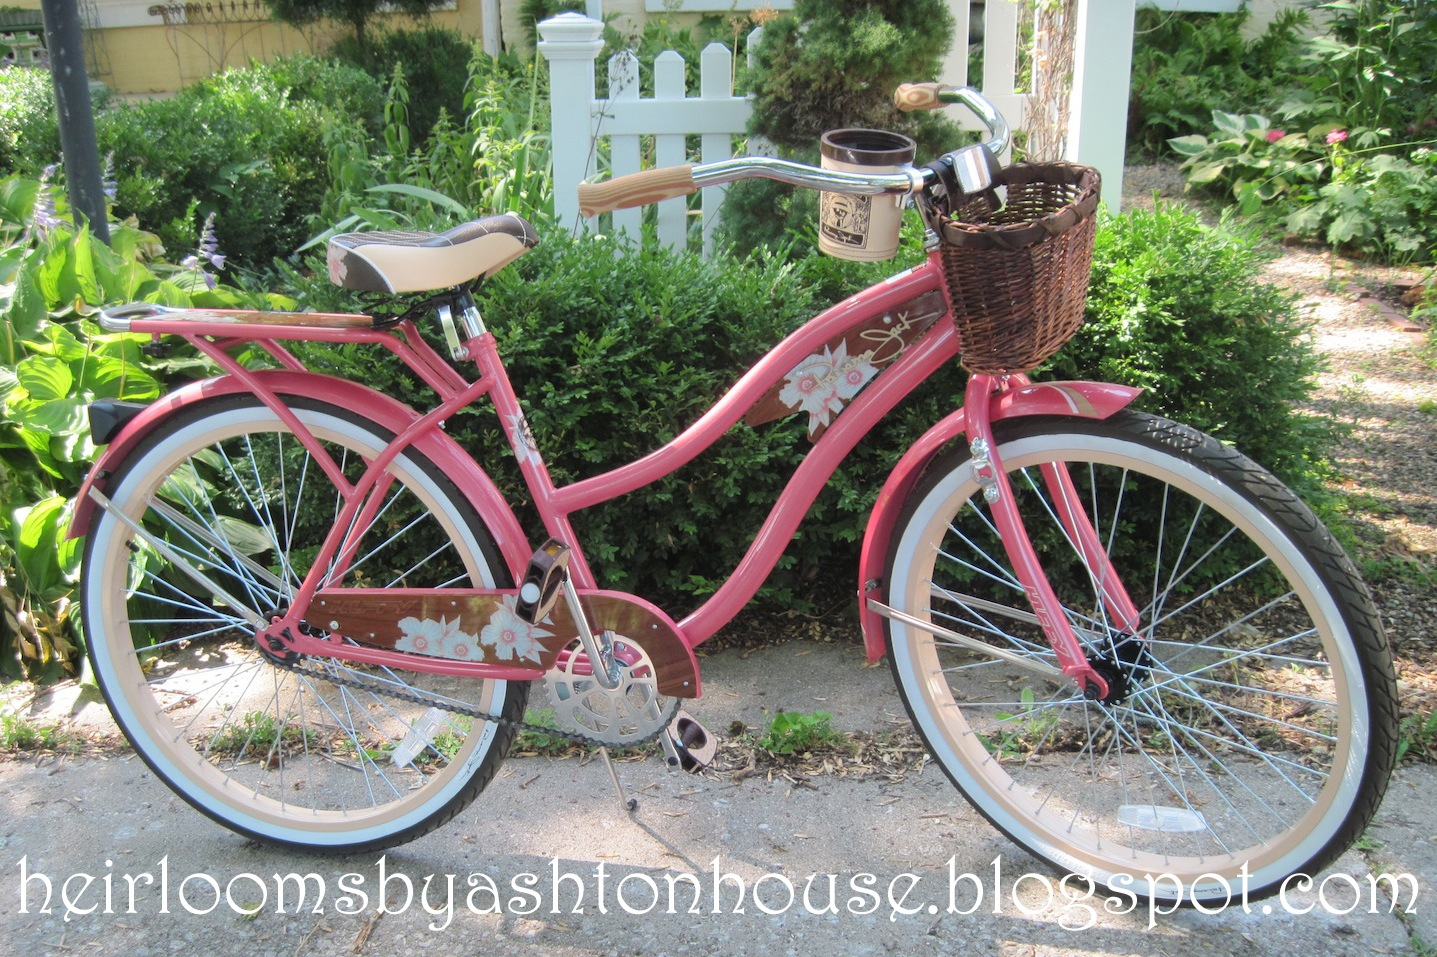 Heirlooms by Ashton House: BLISS IS A PINK BIKE